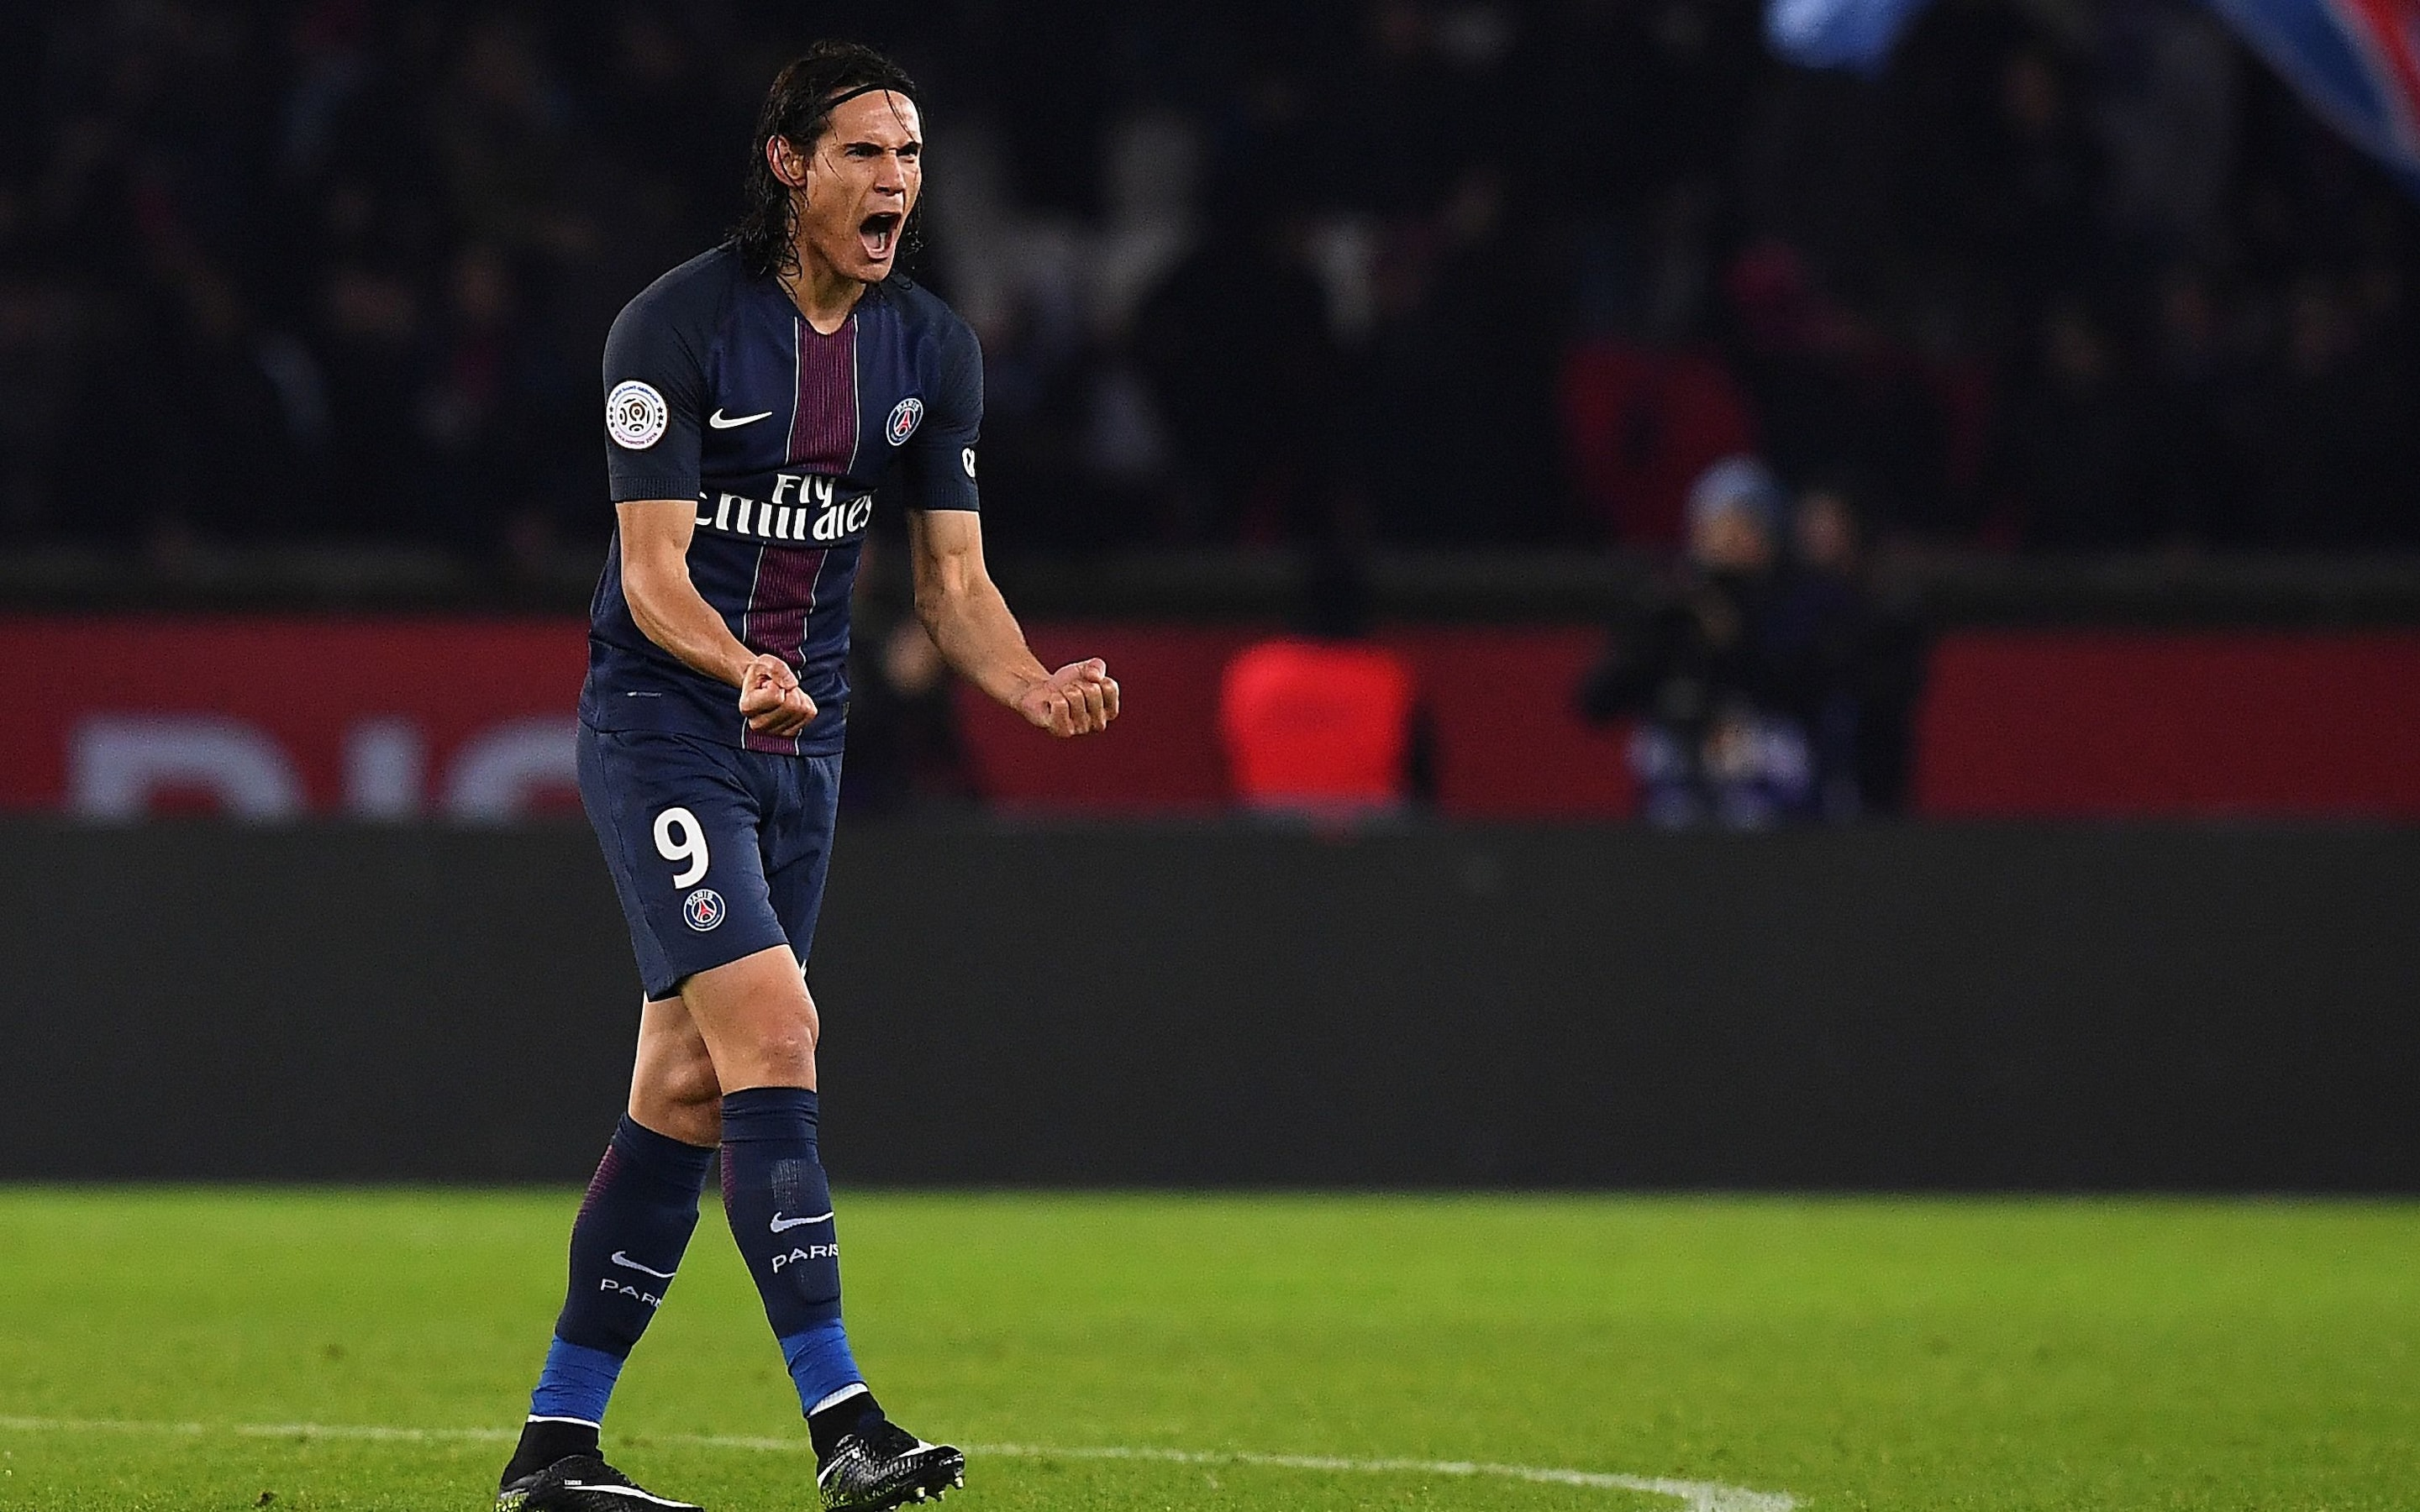 Edinson Cavani Cristiano Ronaldo The Top 20 Heading